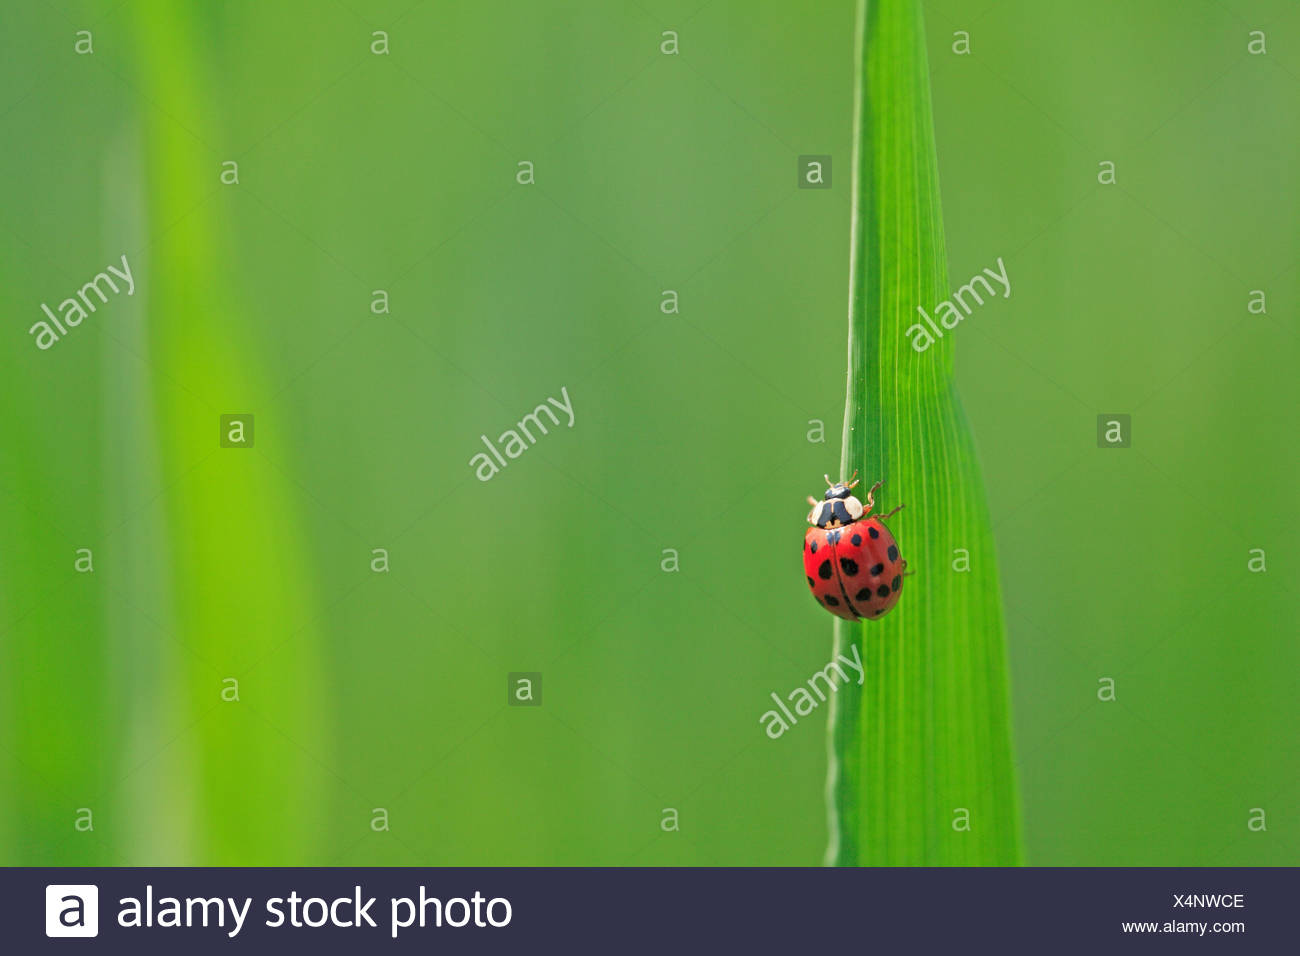 Blade of grass, ladybird, grass, leaves, stalk, green, animal, beetle, insect, red, dots, scored, luck bringer, luck beetle, Coccinellidae, nature, close up, copy space, - Stock Image